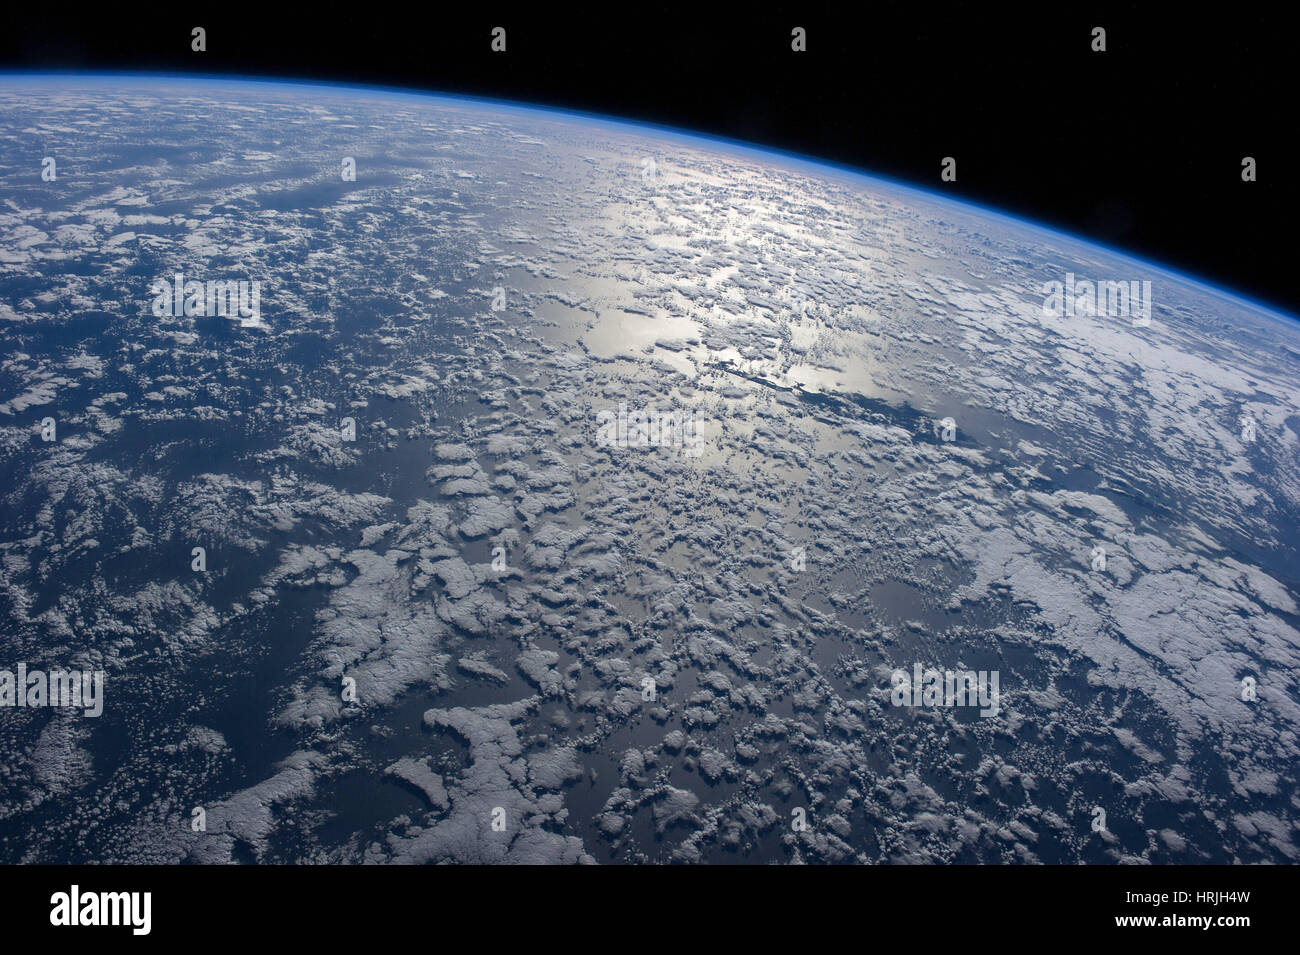 Oceanic Earth from the ISS - Stock Image